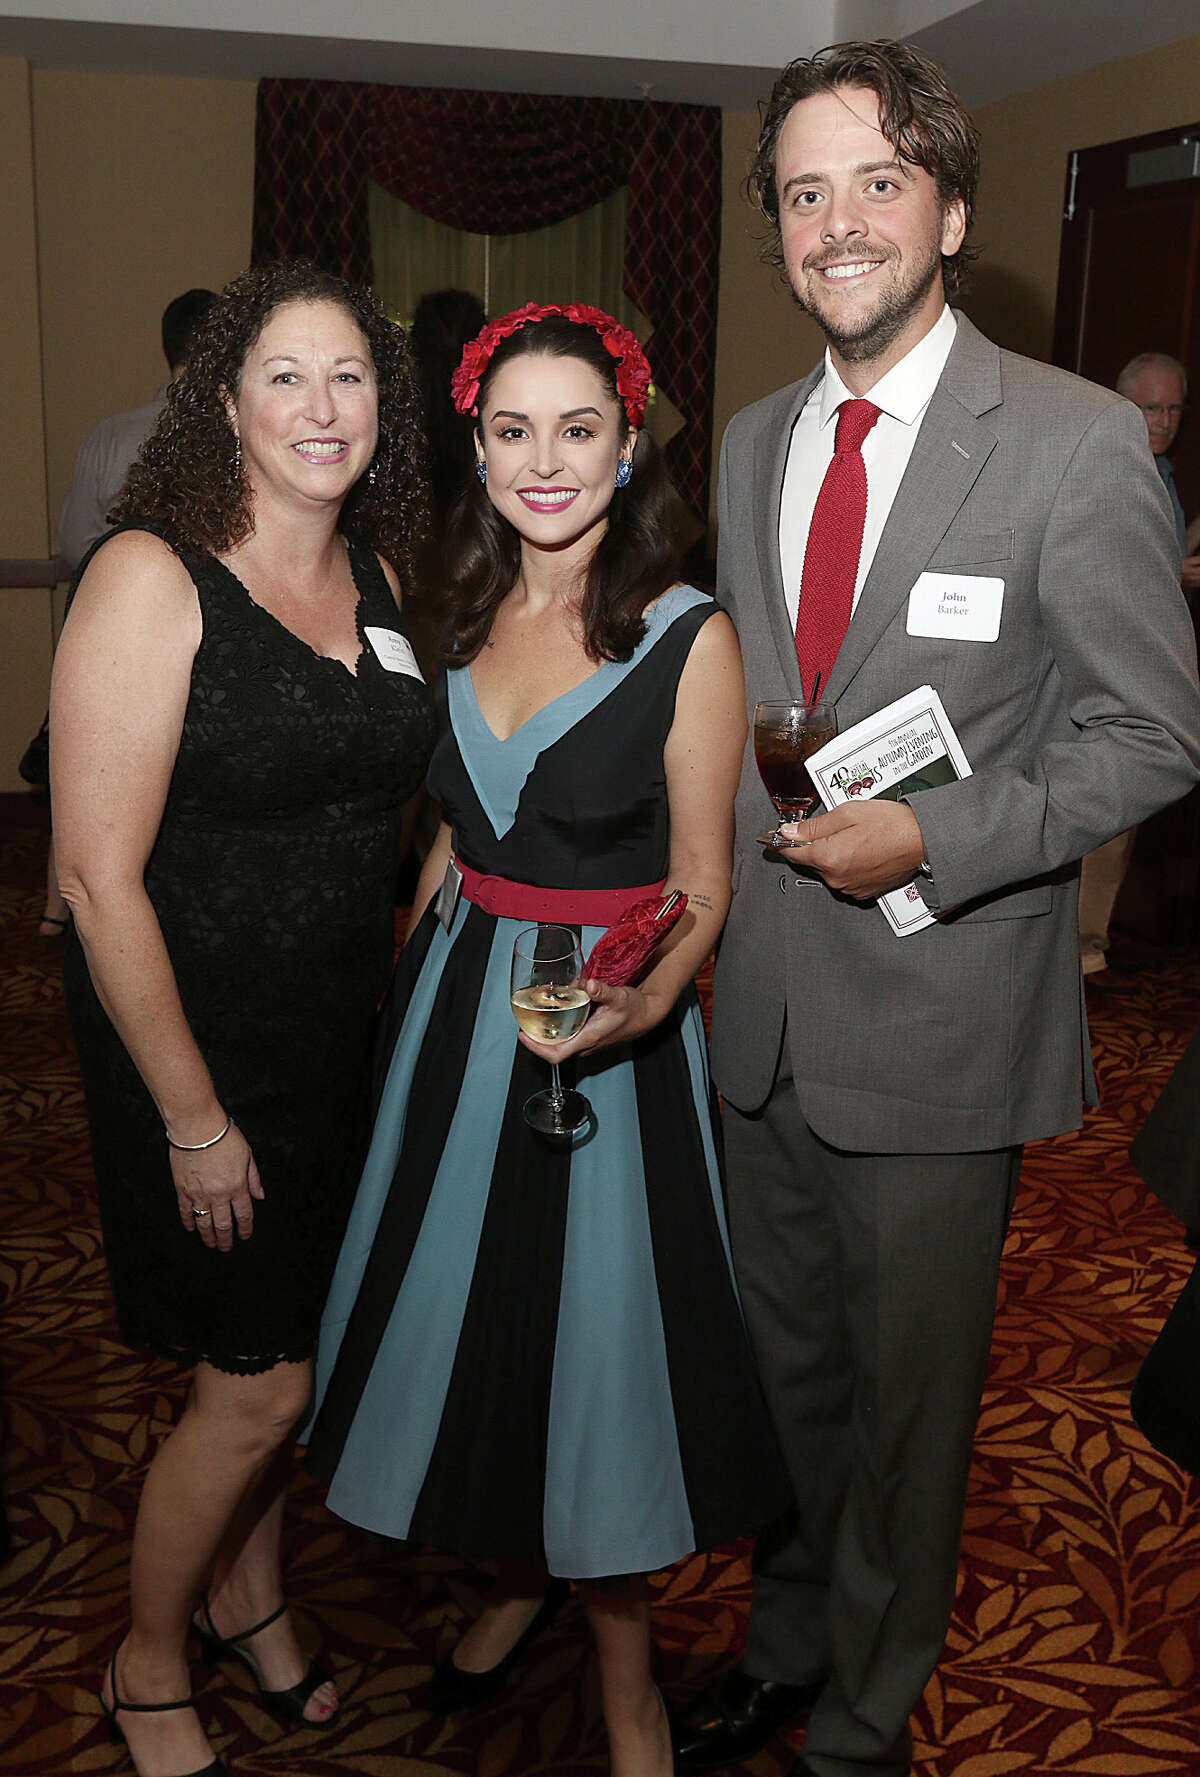 Were you Seen at Capital Roots' 9th Annual Autumn Evening in the Garden Gala at the Hilton Garden Inn in Troy on Thursday, September 17, 2015?